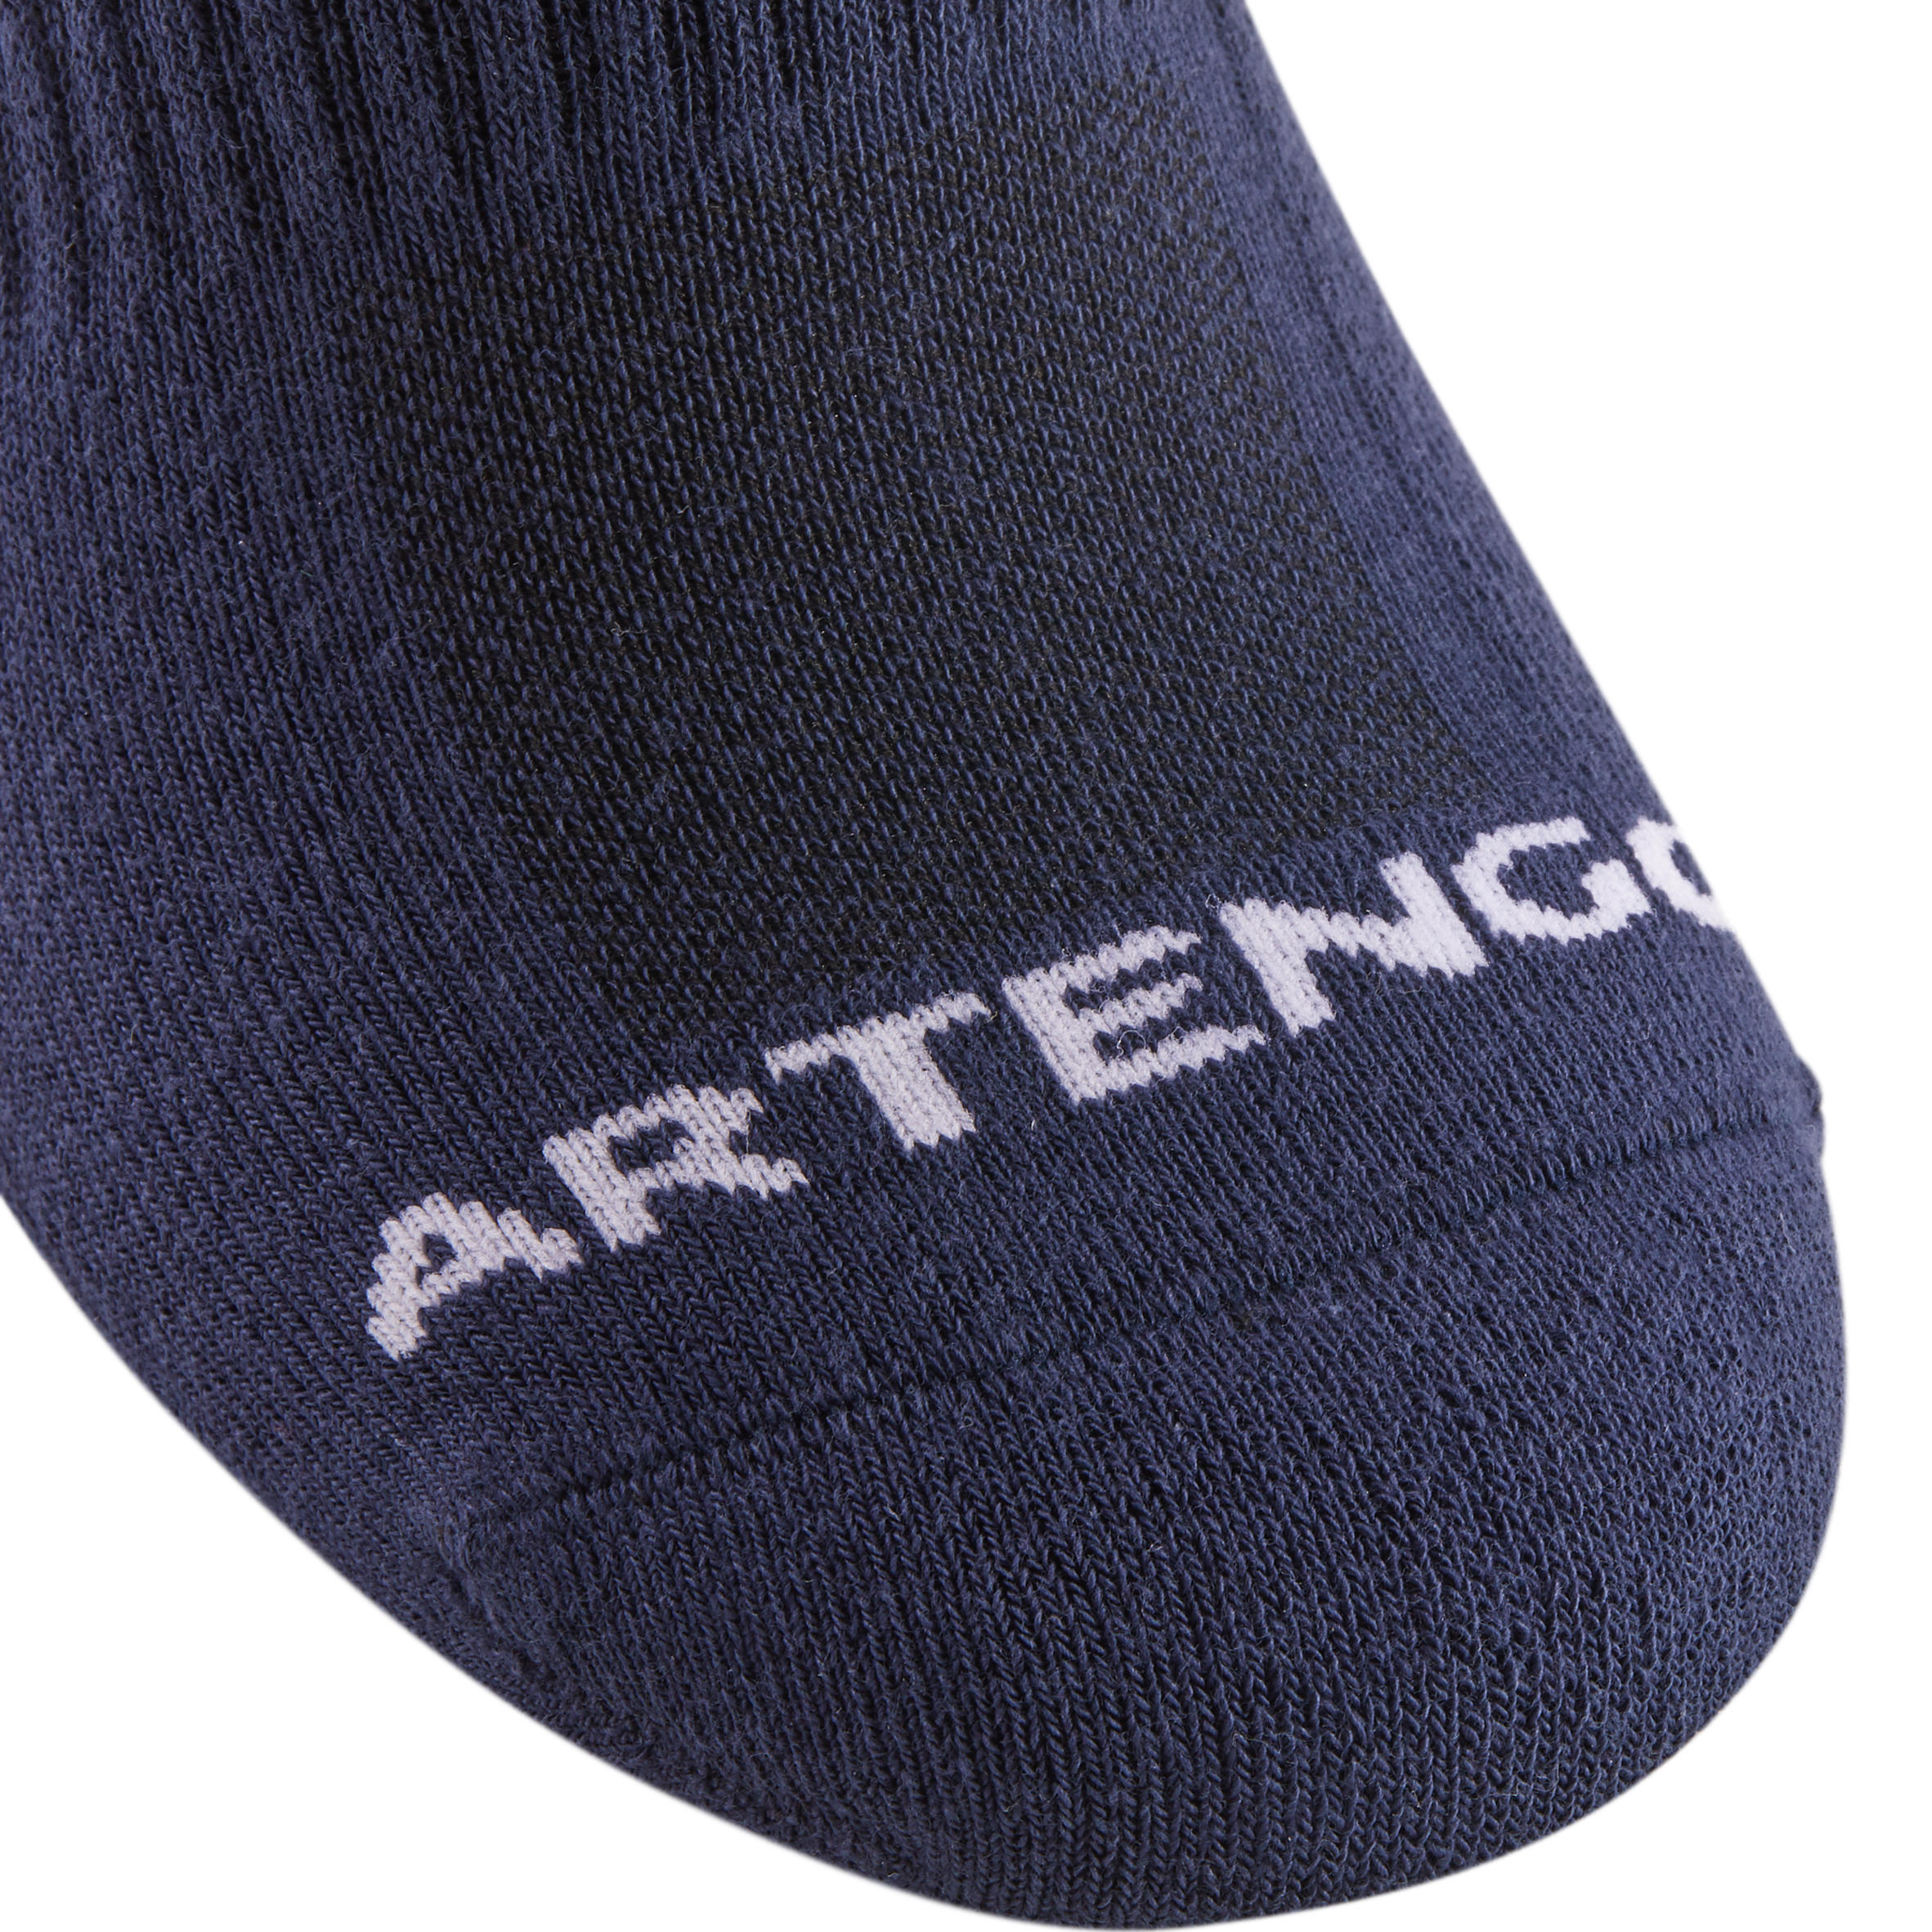 RS 500 Adult Mid Sport Socks 3-Pack - Navy/Coral